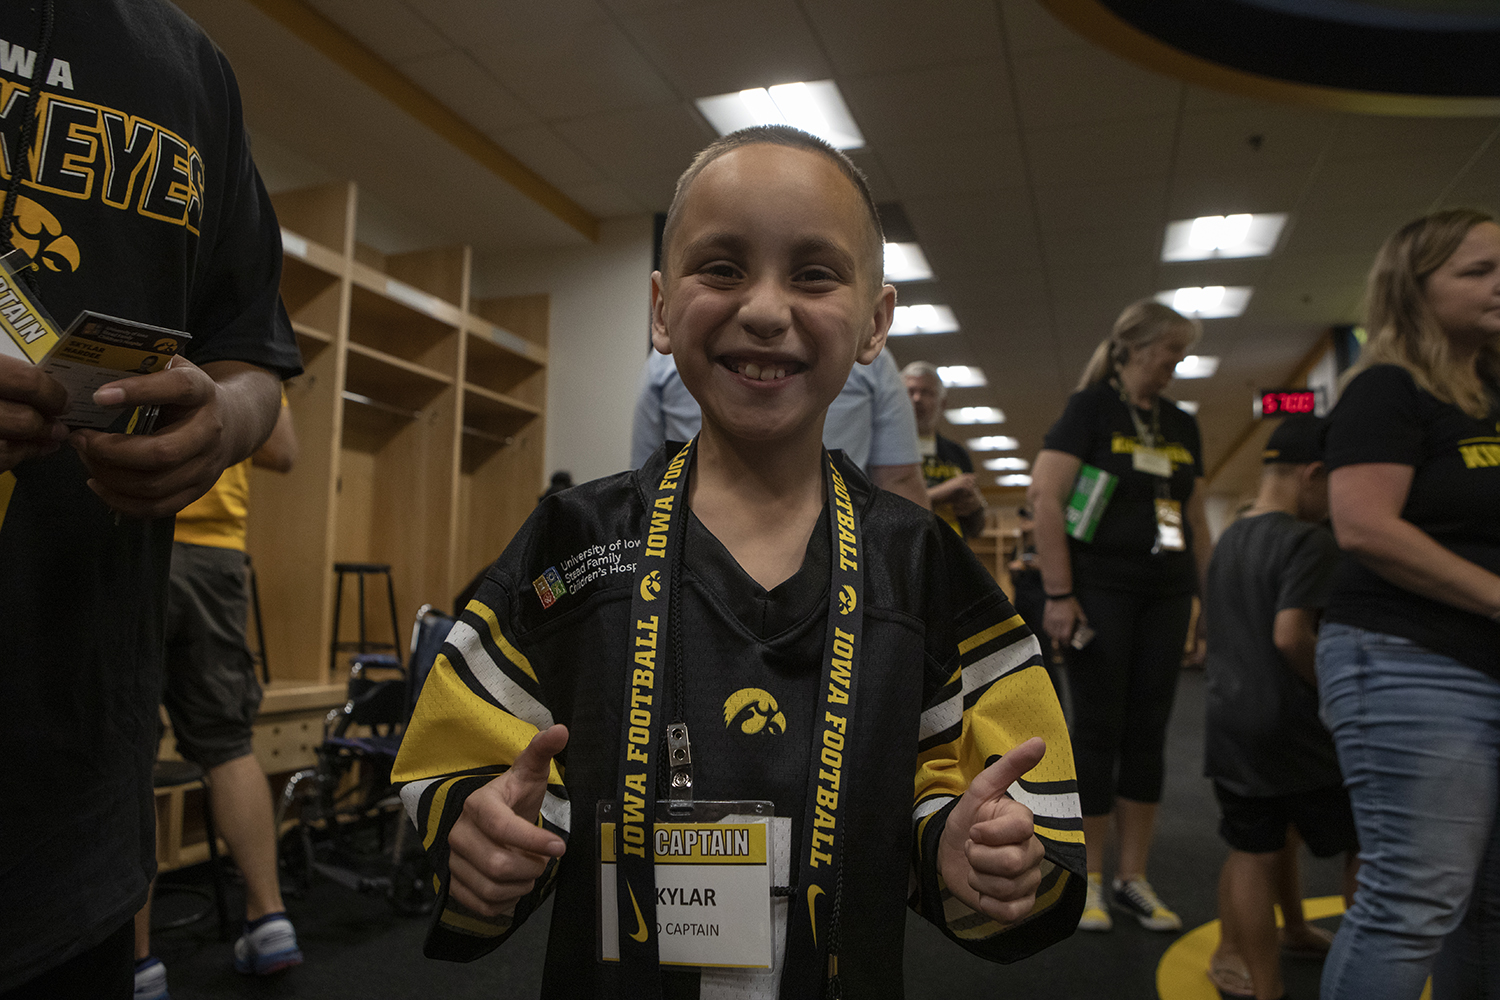 Kid Captain Skylar Hardee signals a thumbs up in the Hawkeye football locker room at Kids Day at Kinnick on Saturday, August 10, 2019. Kids Day at Kinnick is an annual event for families to experience Iowa's football stadium, while watching preseason practice and honoring this year's Kid Captains.